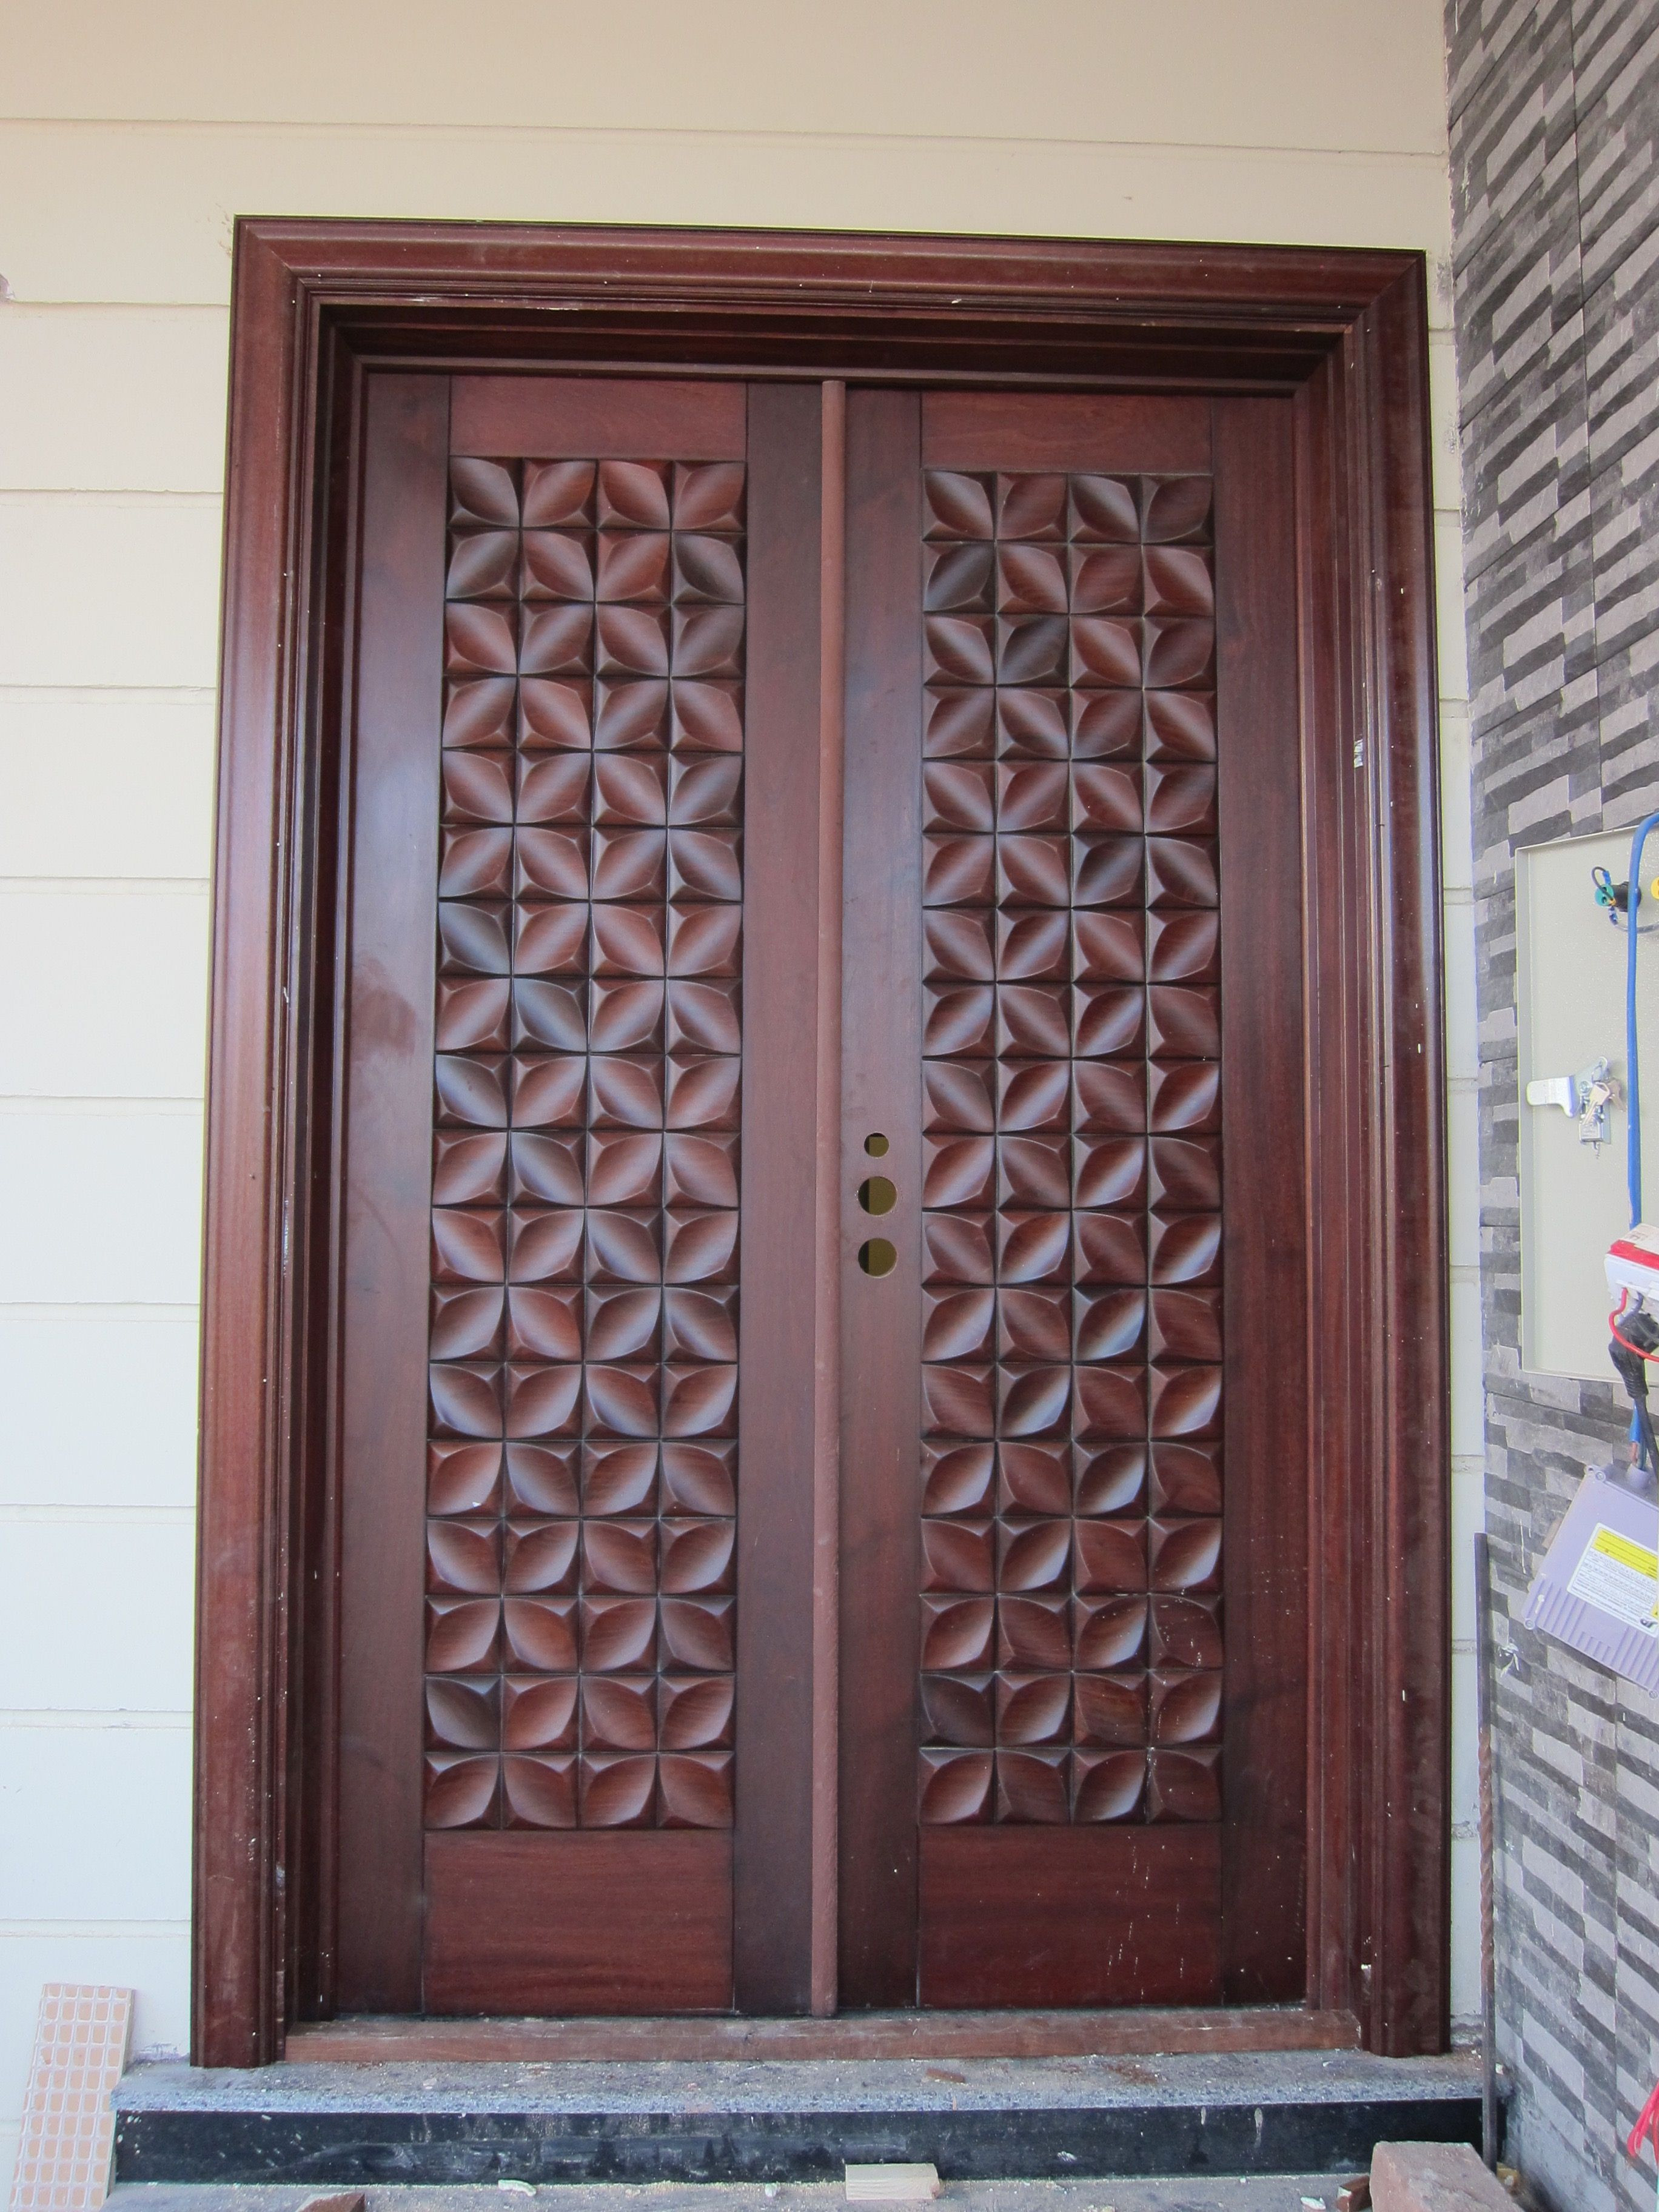 Home Main Gate Design Ideas Awesome now that is One Delicious Chocolate Door